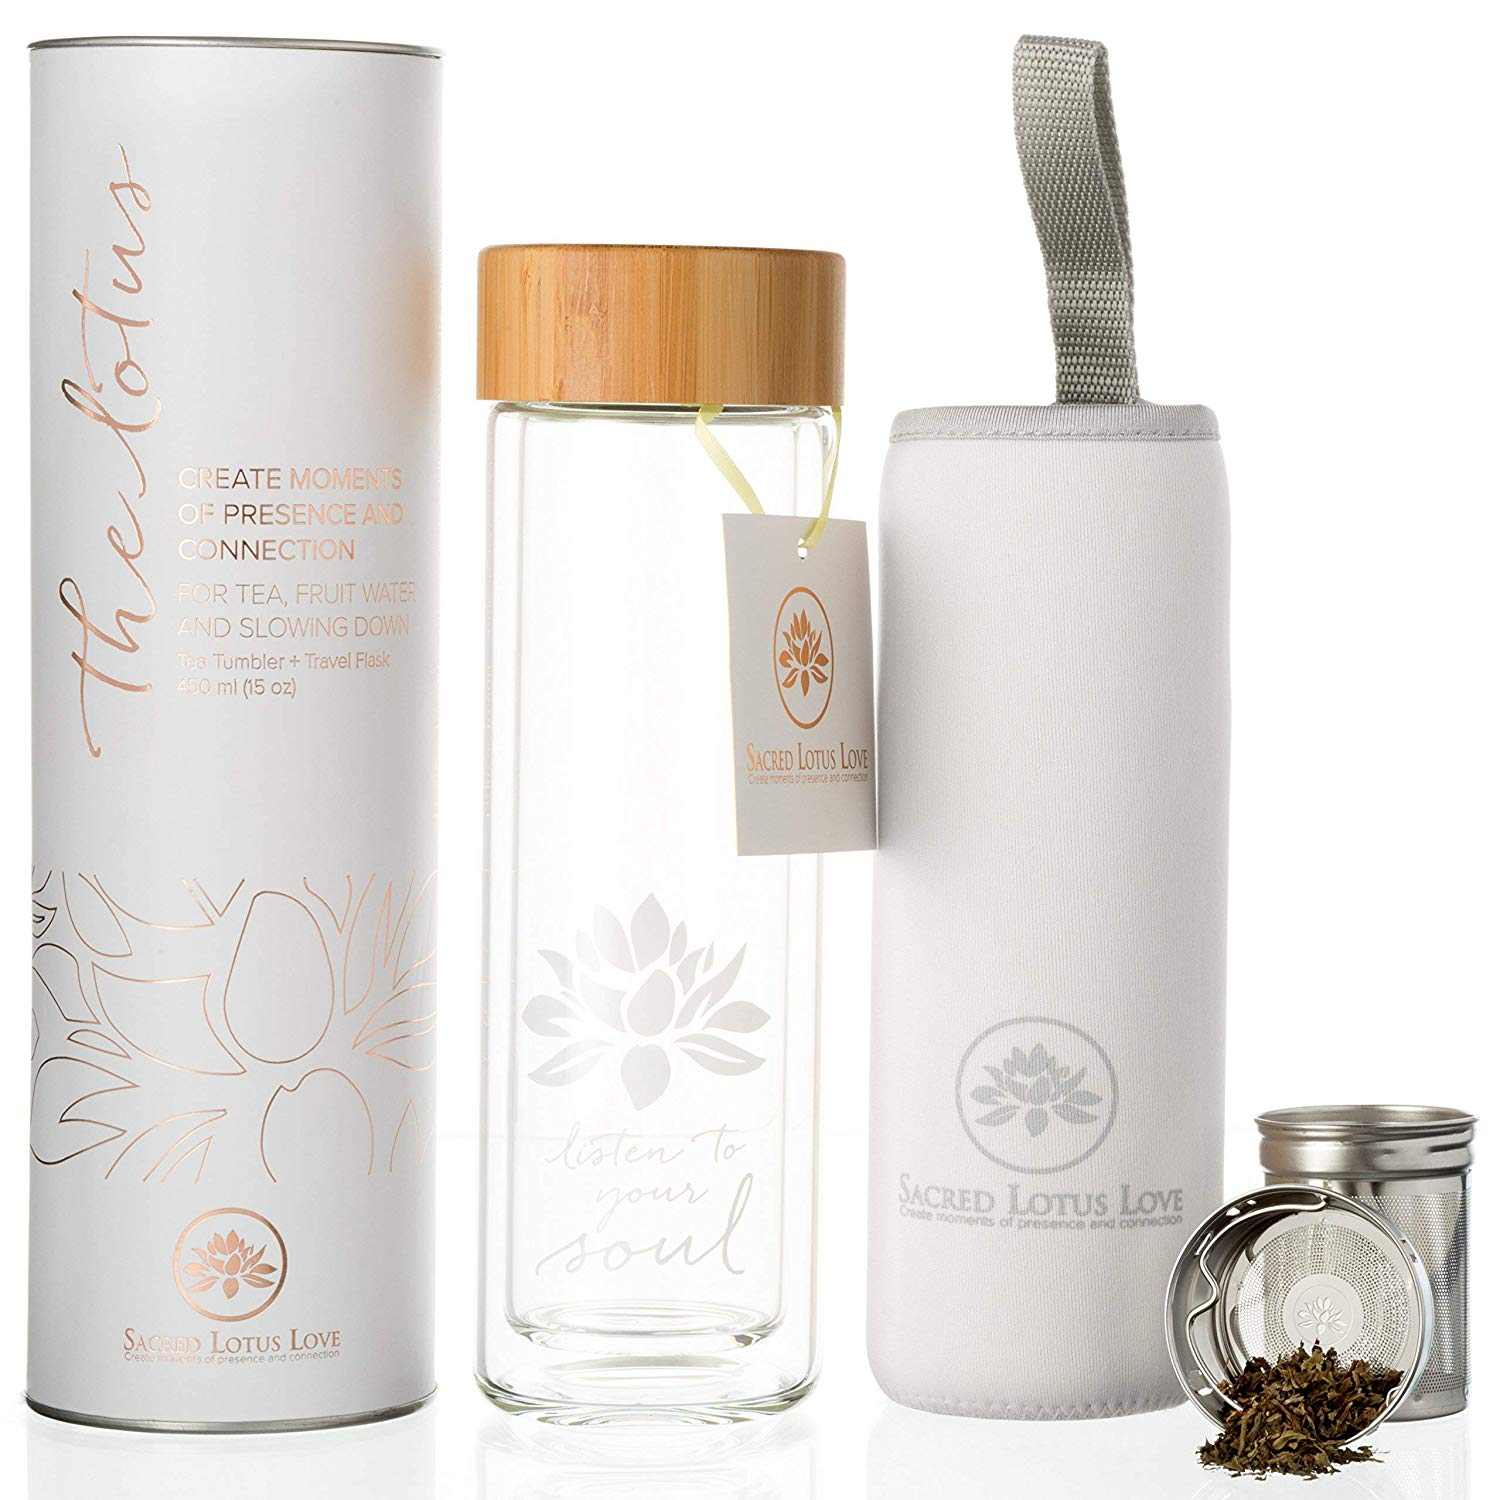 "With a modern and beautiful design, this tea infuser set can also be used for smoothies and fruit-infused water! It's 100% sustainable, with a bamboo lid, and the double-walled glass is incredibly sleek. I love the design and the ""Listen to Your Soul"" messaging!"